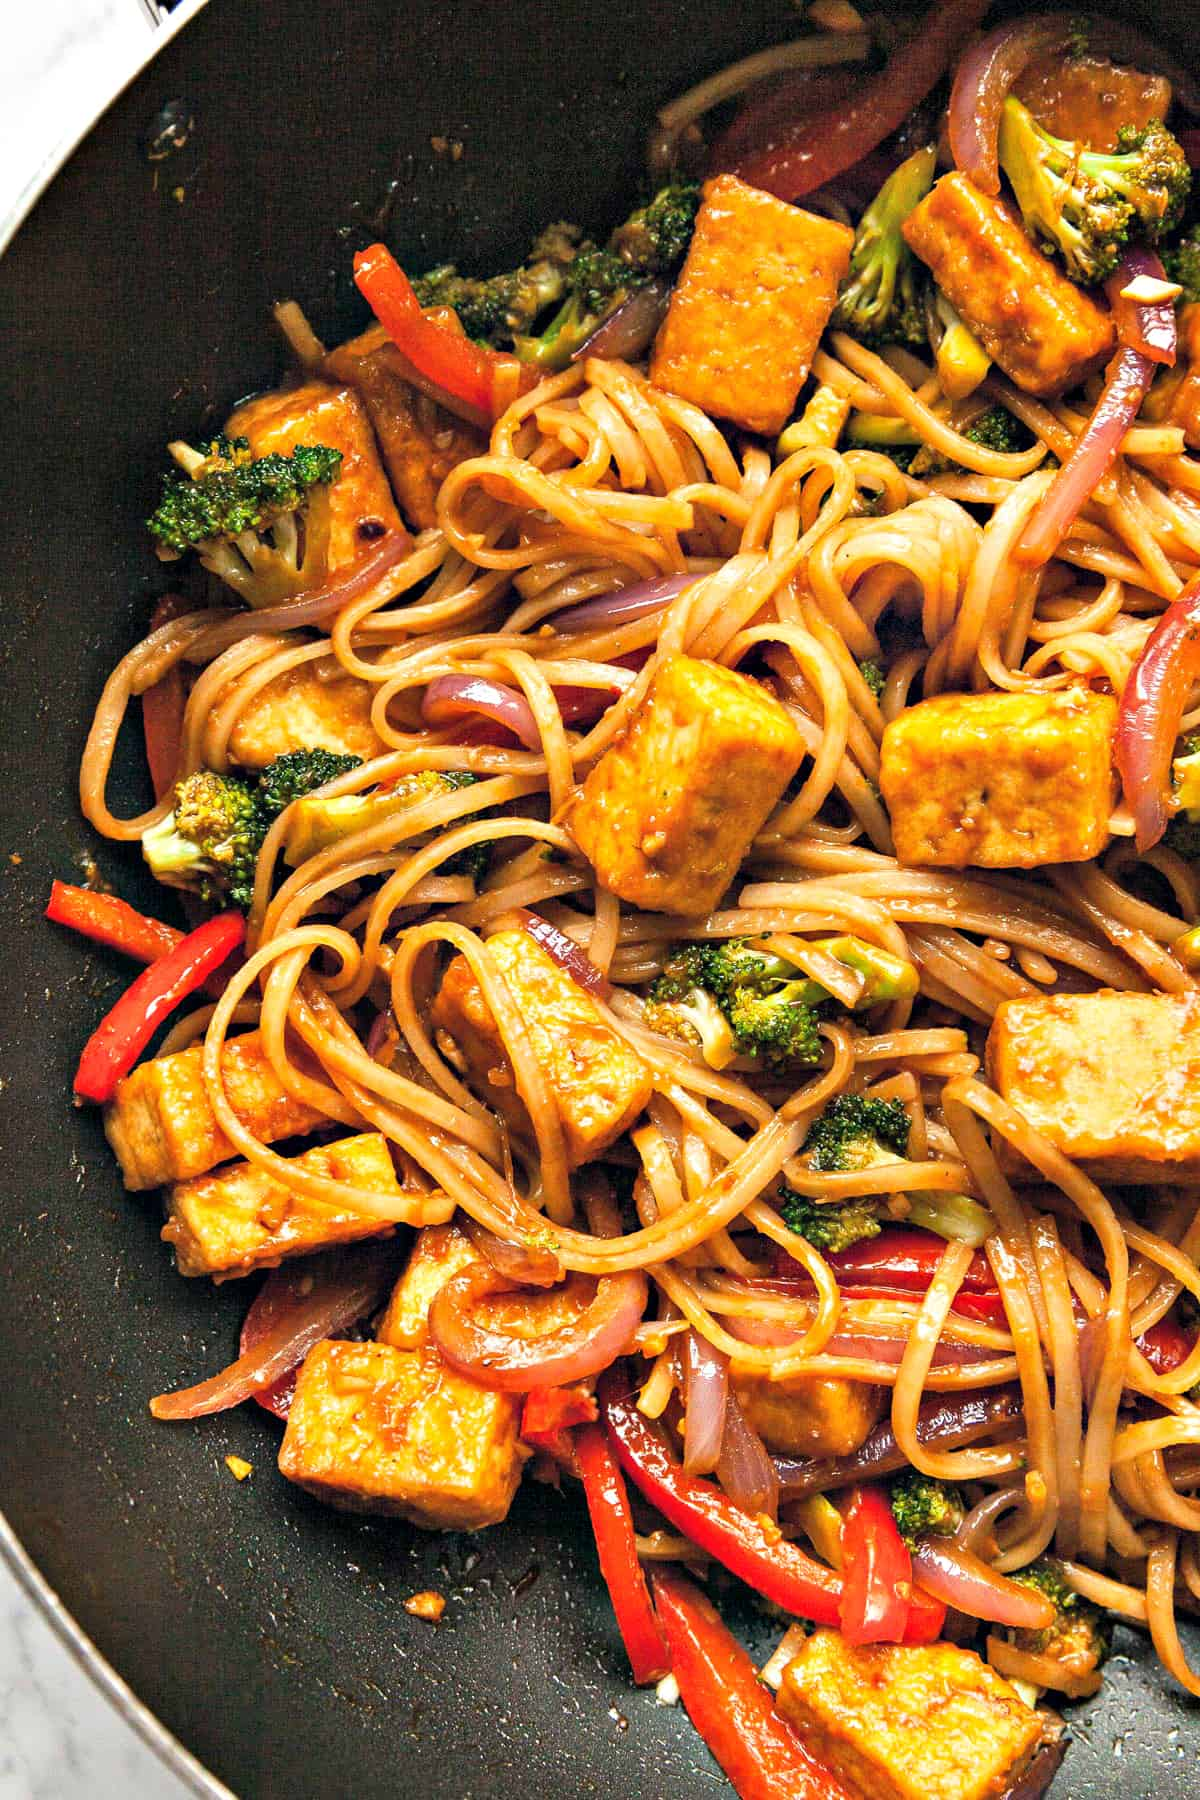 Close up view of fully cooked stir fry in a wok.